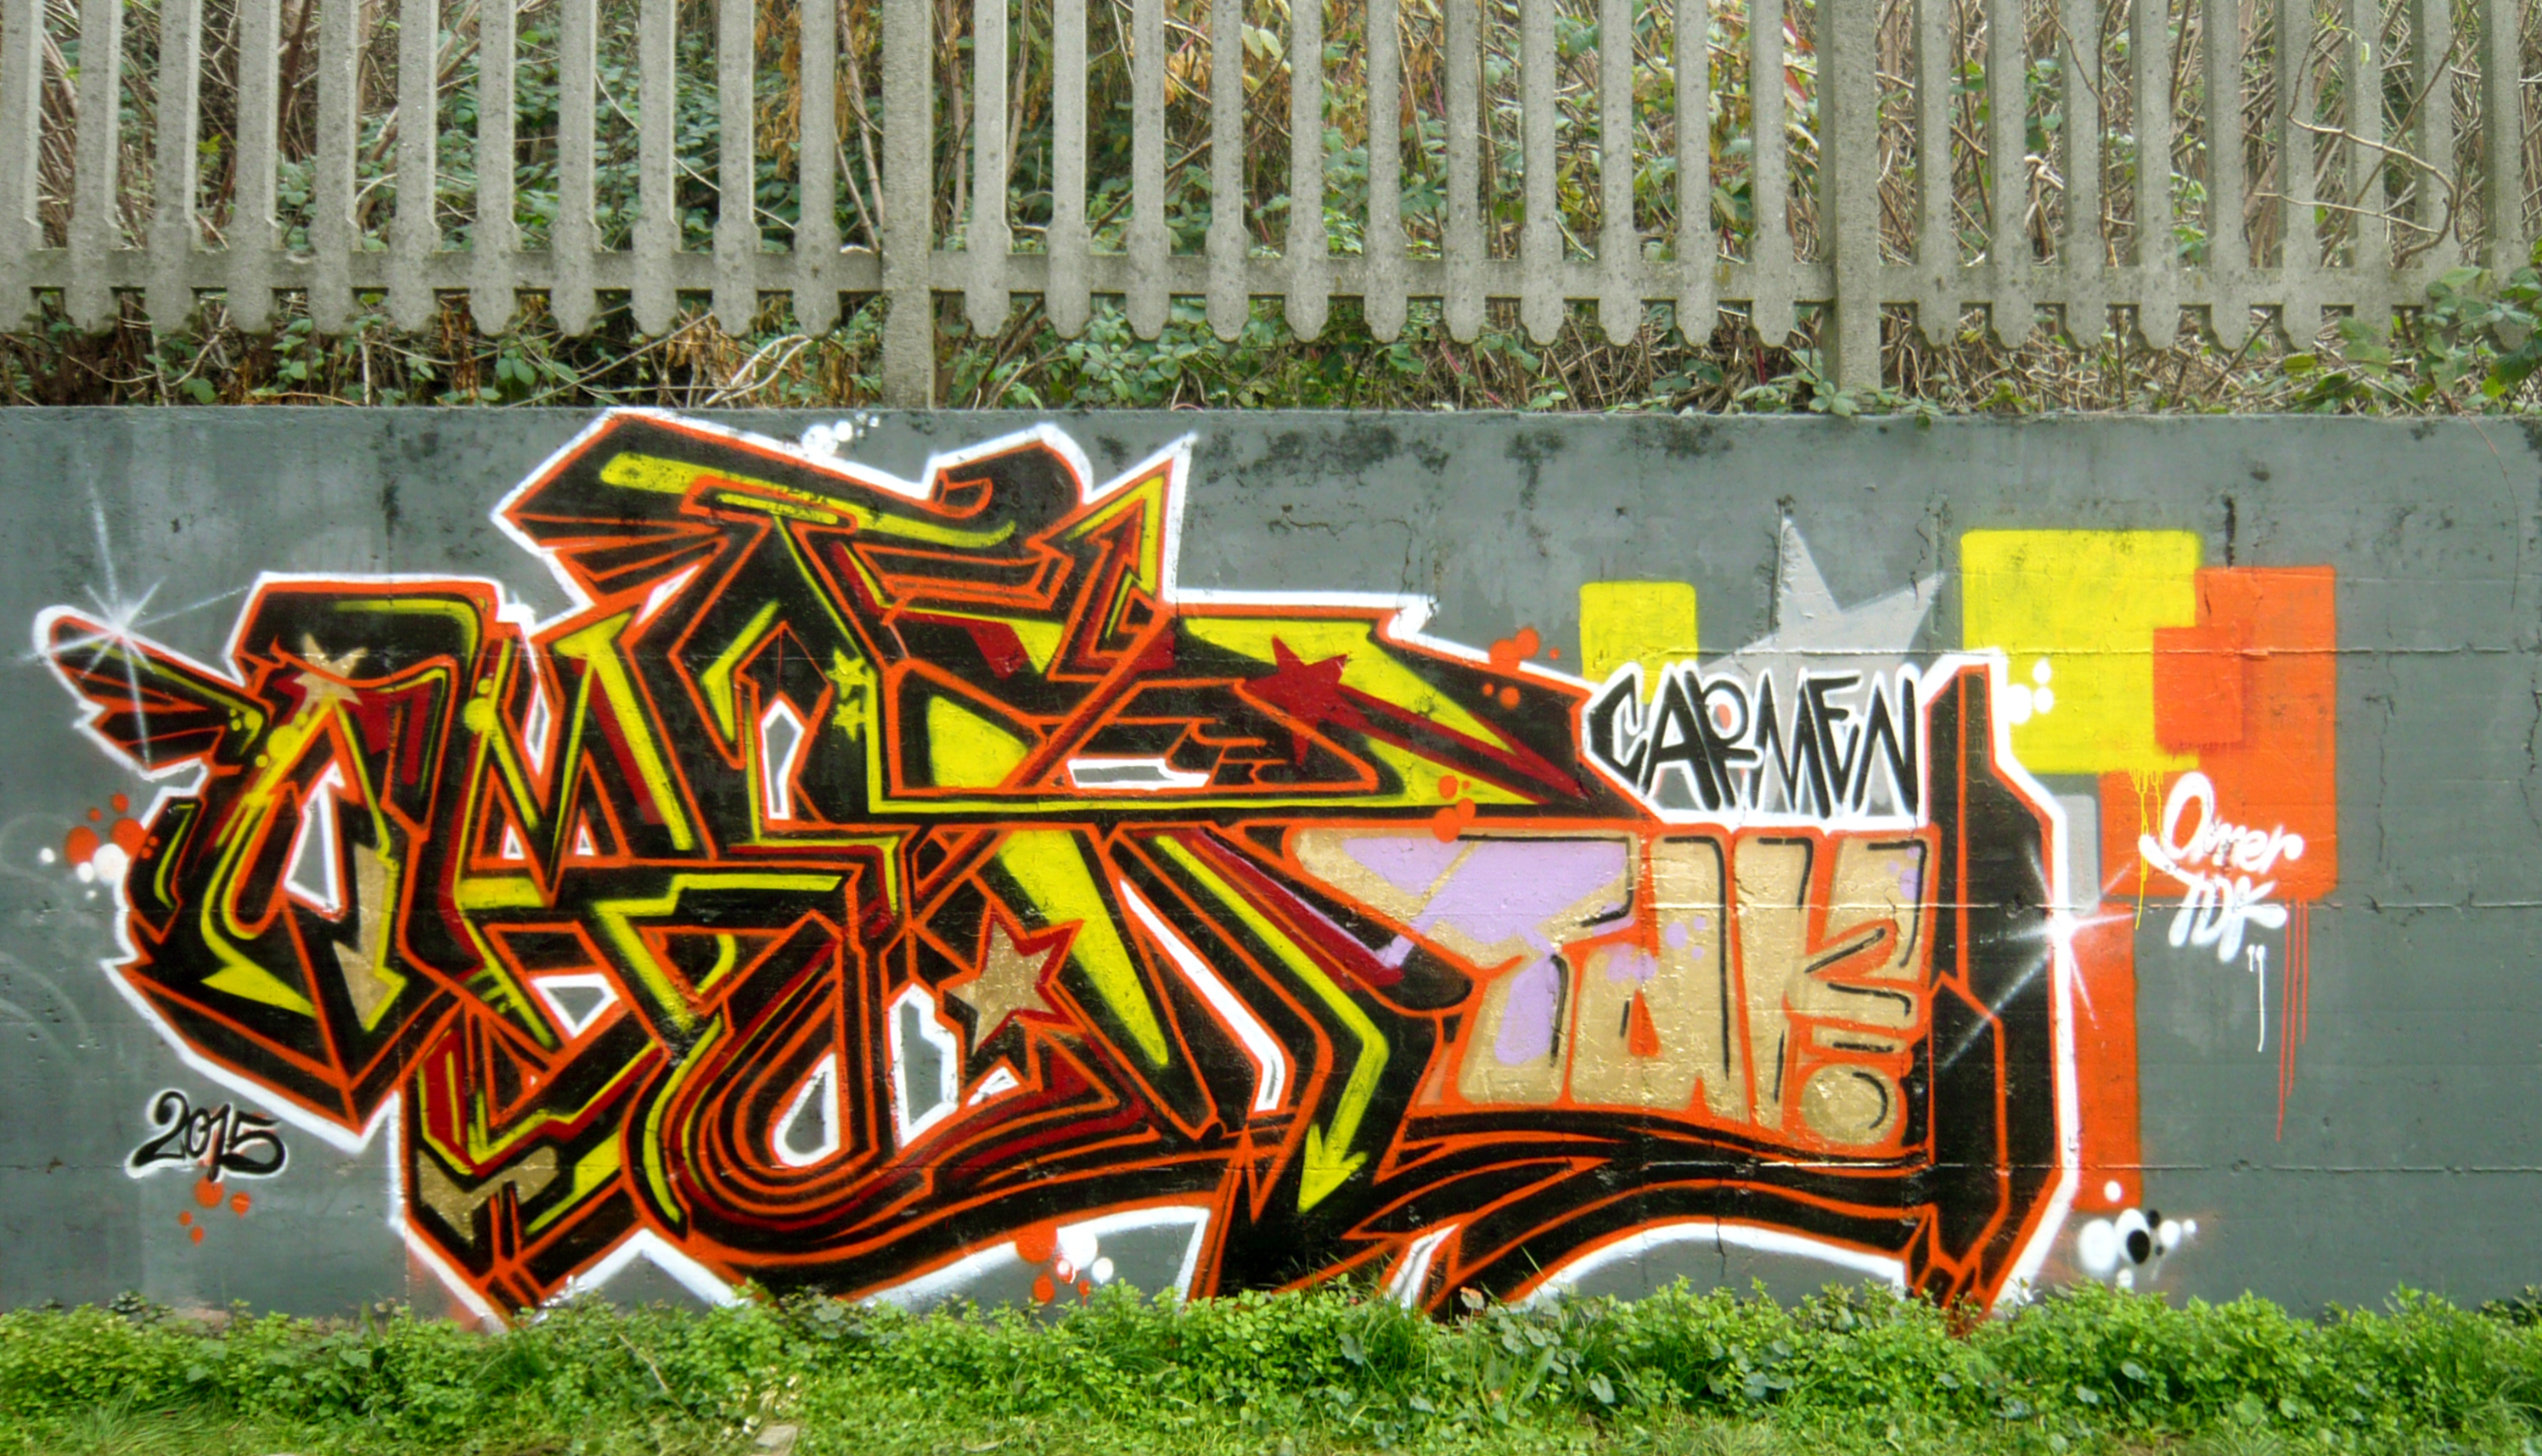 Omer Tdk Via Amadeo 2015 -  Omer Tdk Via Amadeo 2015